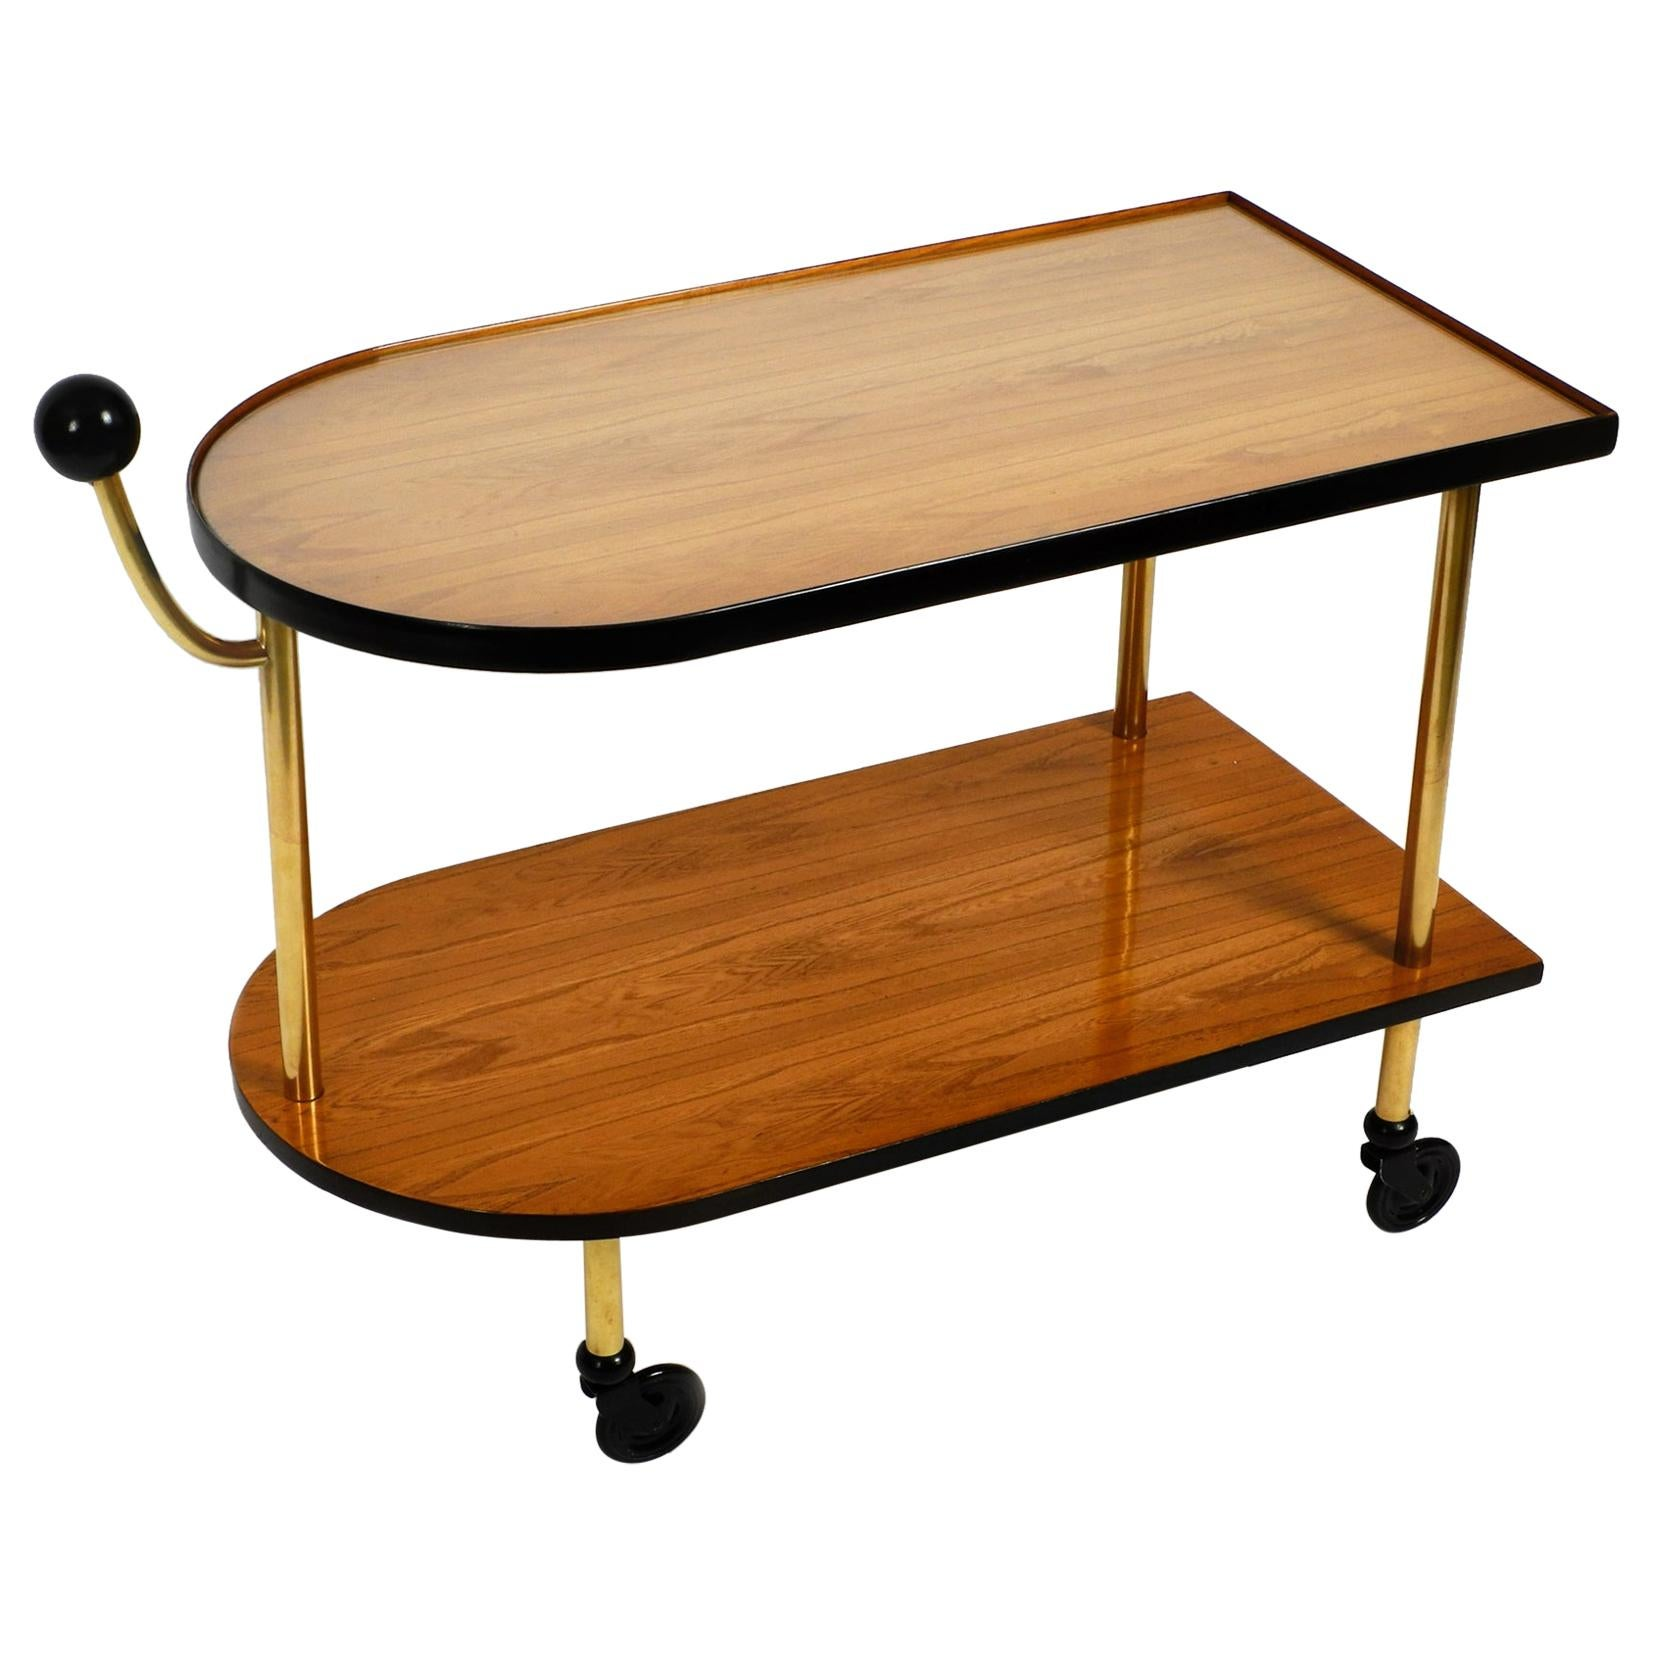 Beautiful French 1930s Art Deco Serving Trolley Recently Completely Restored